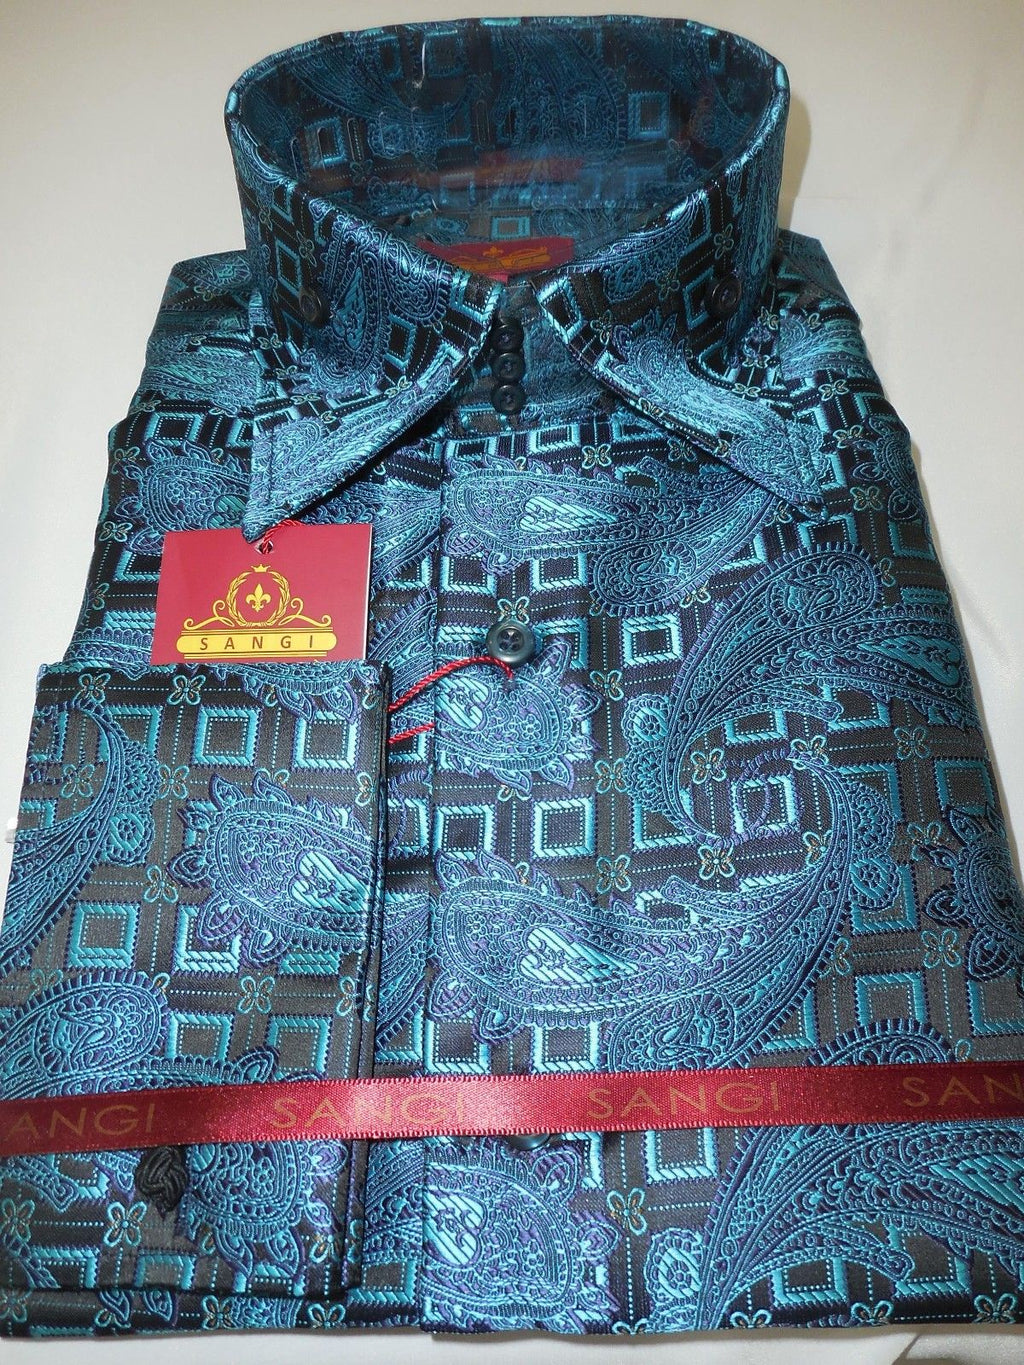 Mens Black Turquoise Paisley Cube High Collar French Cuff Shirt SANGI 1033 - Nader Fashion Las Vegas